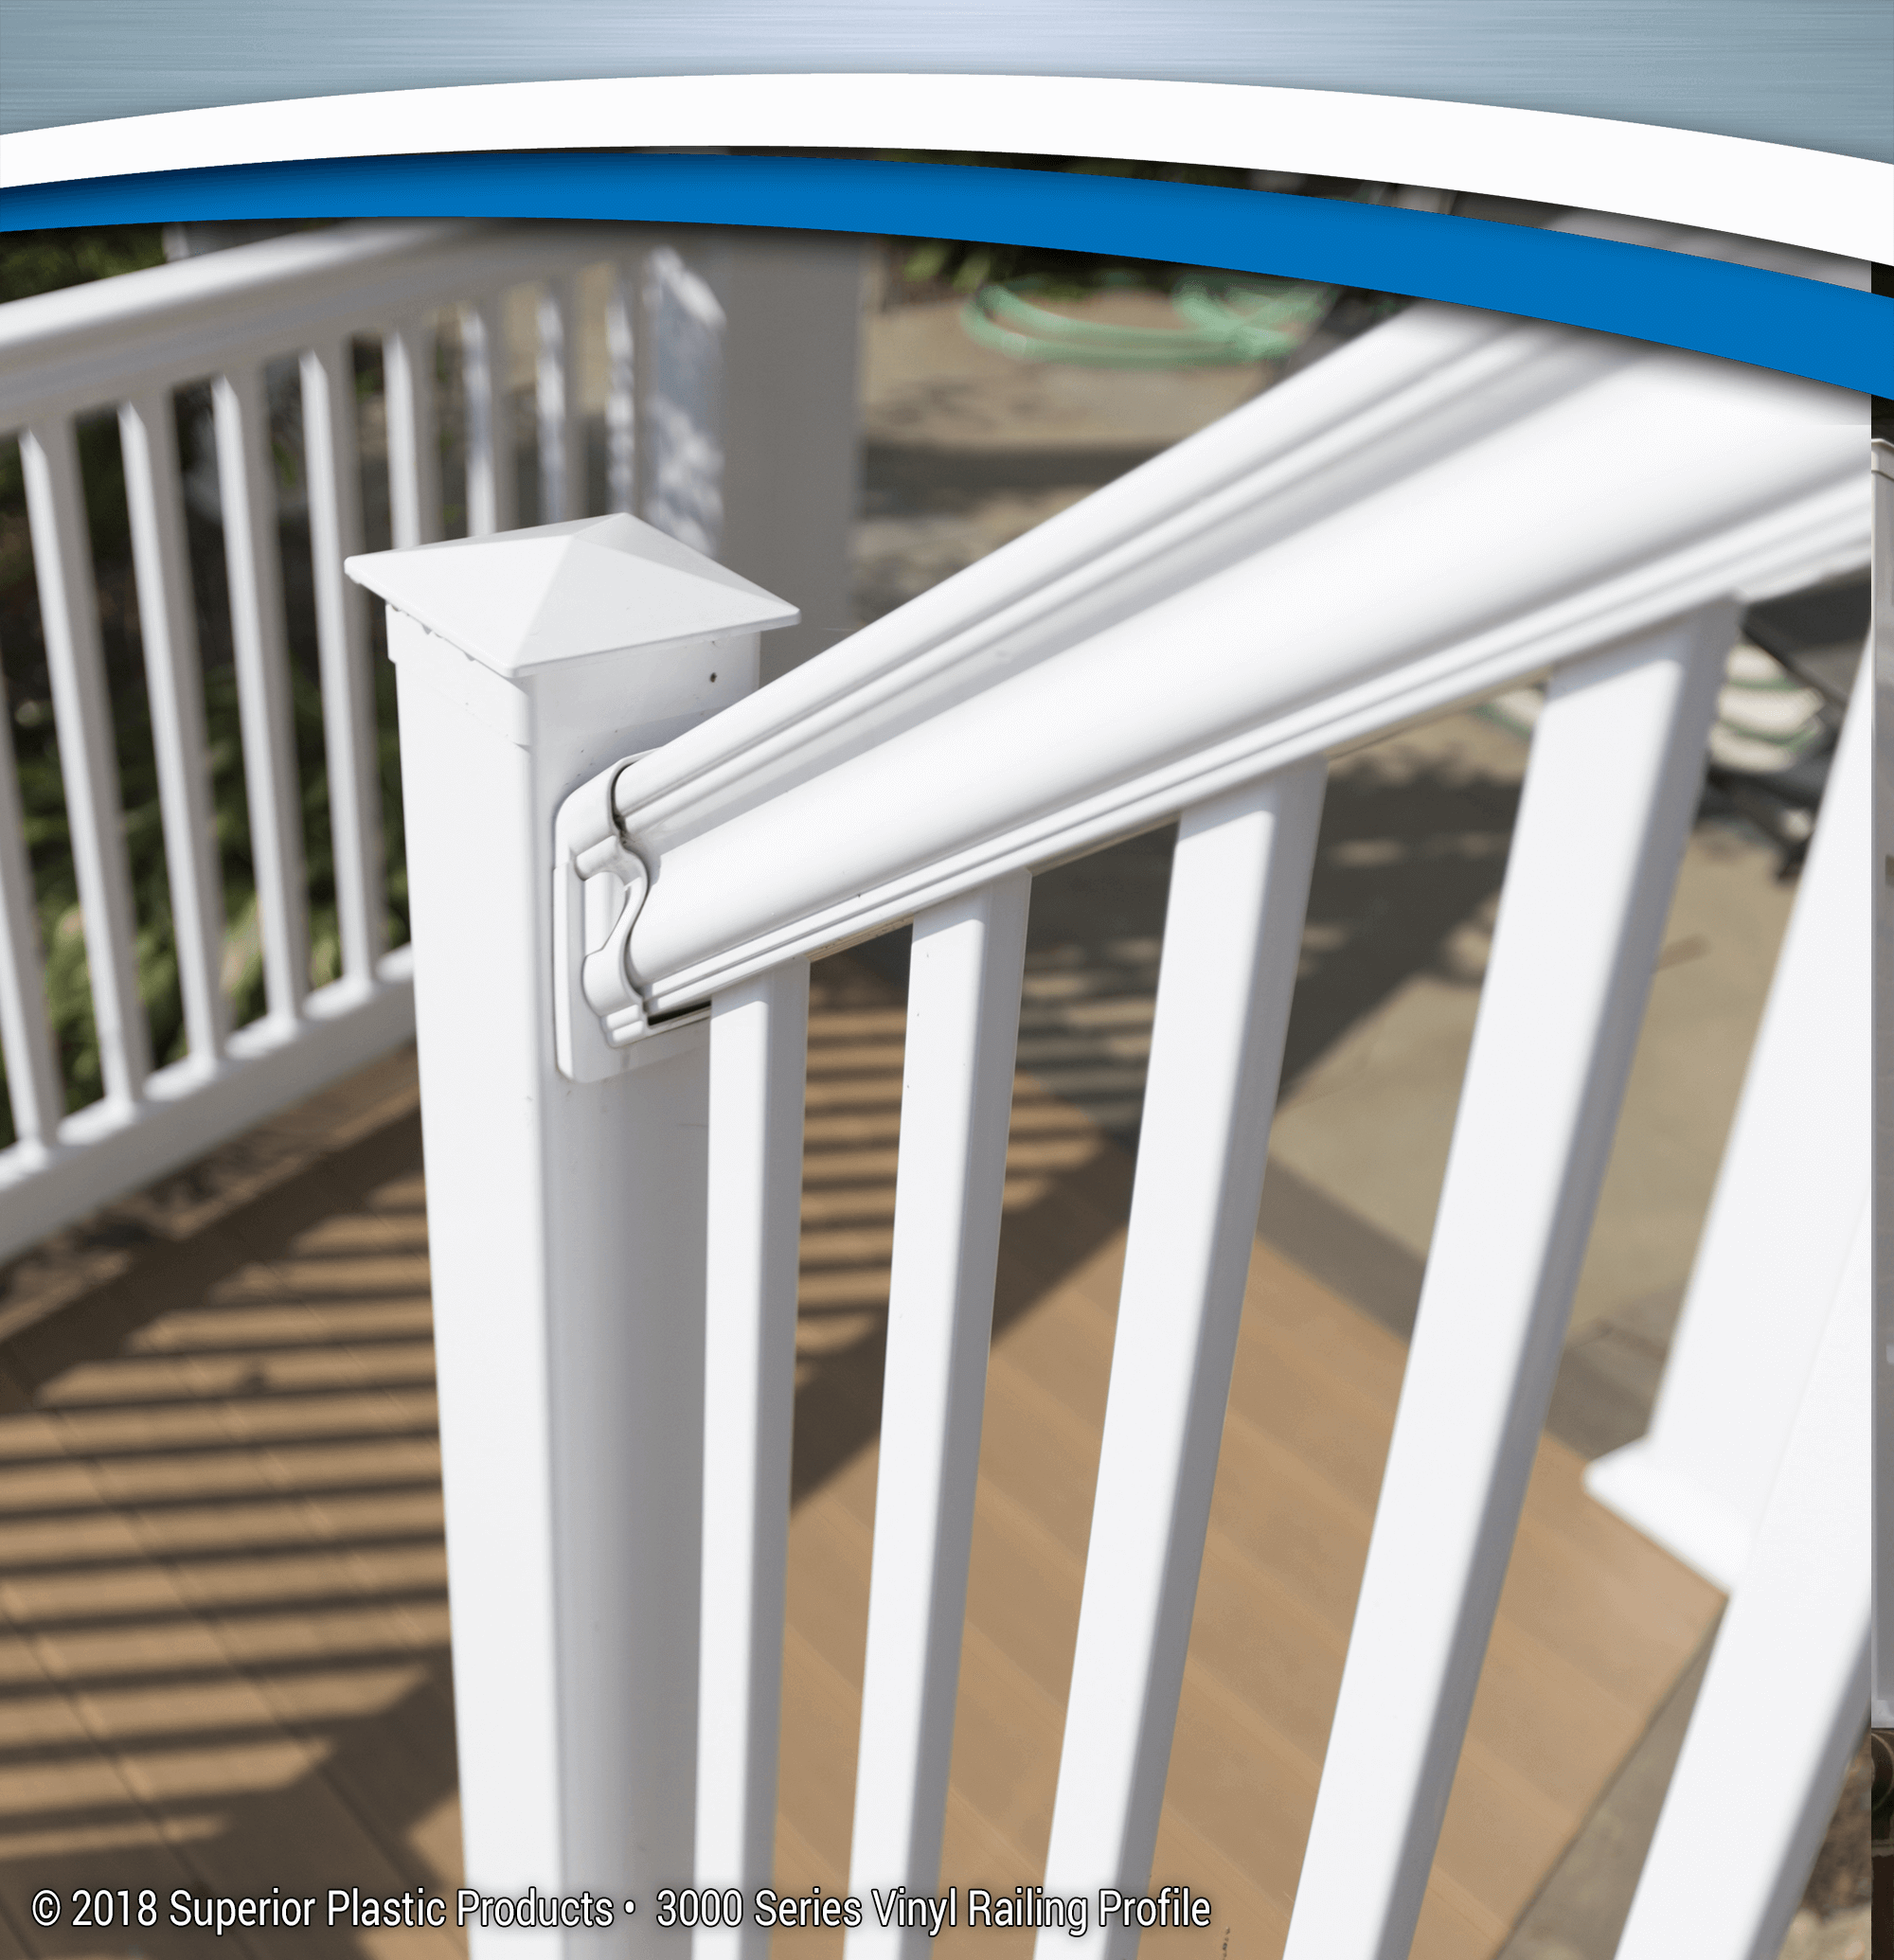 Vinyl Railing Profiles - Superior Plastic Products